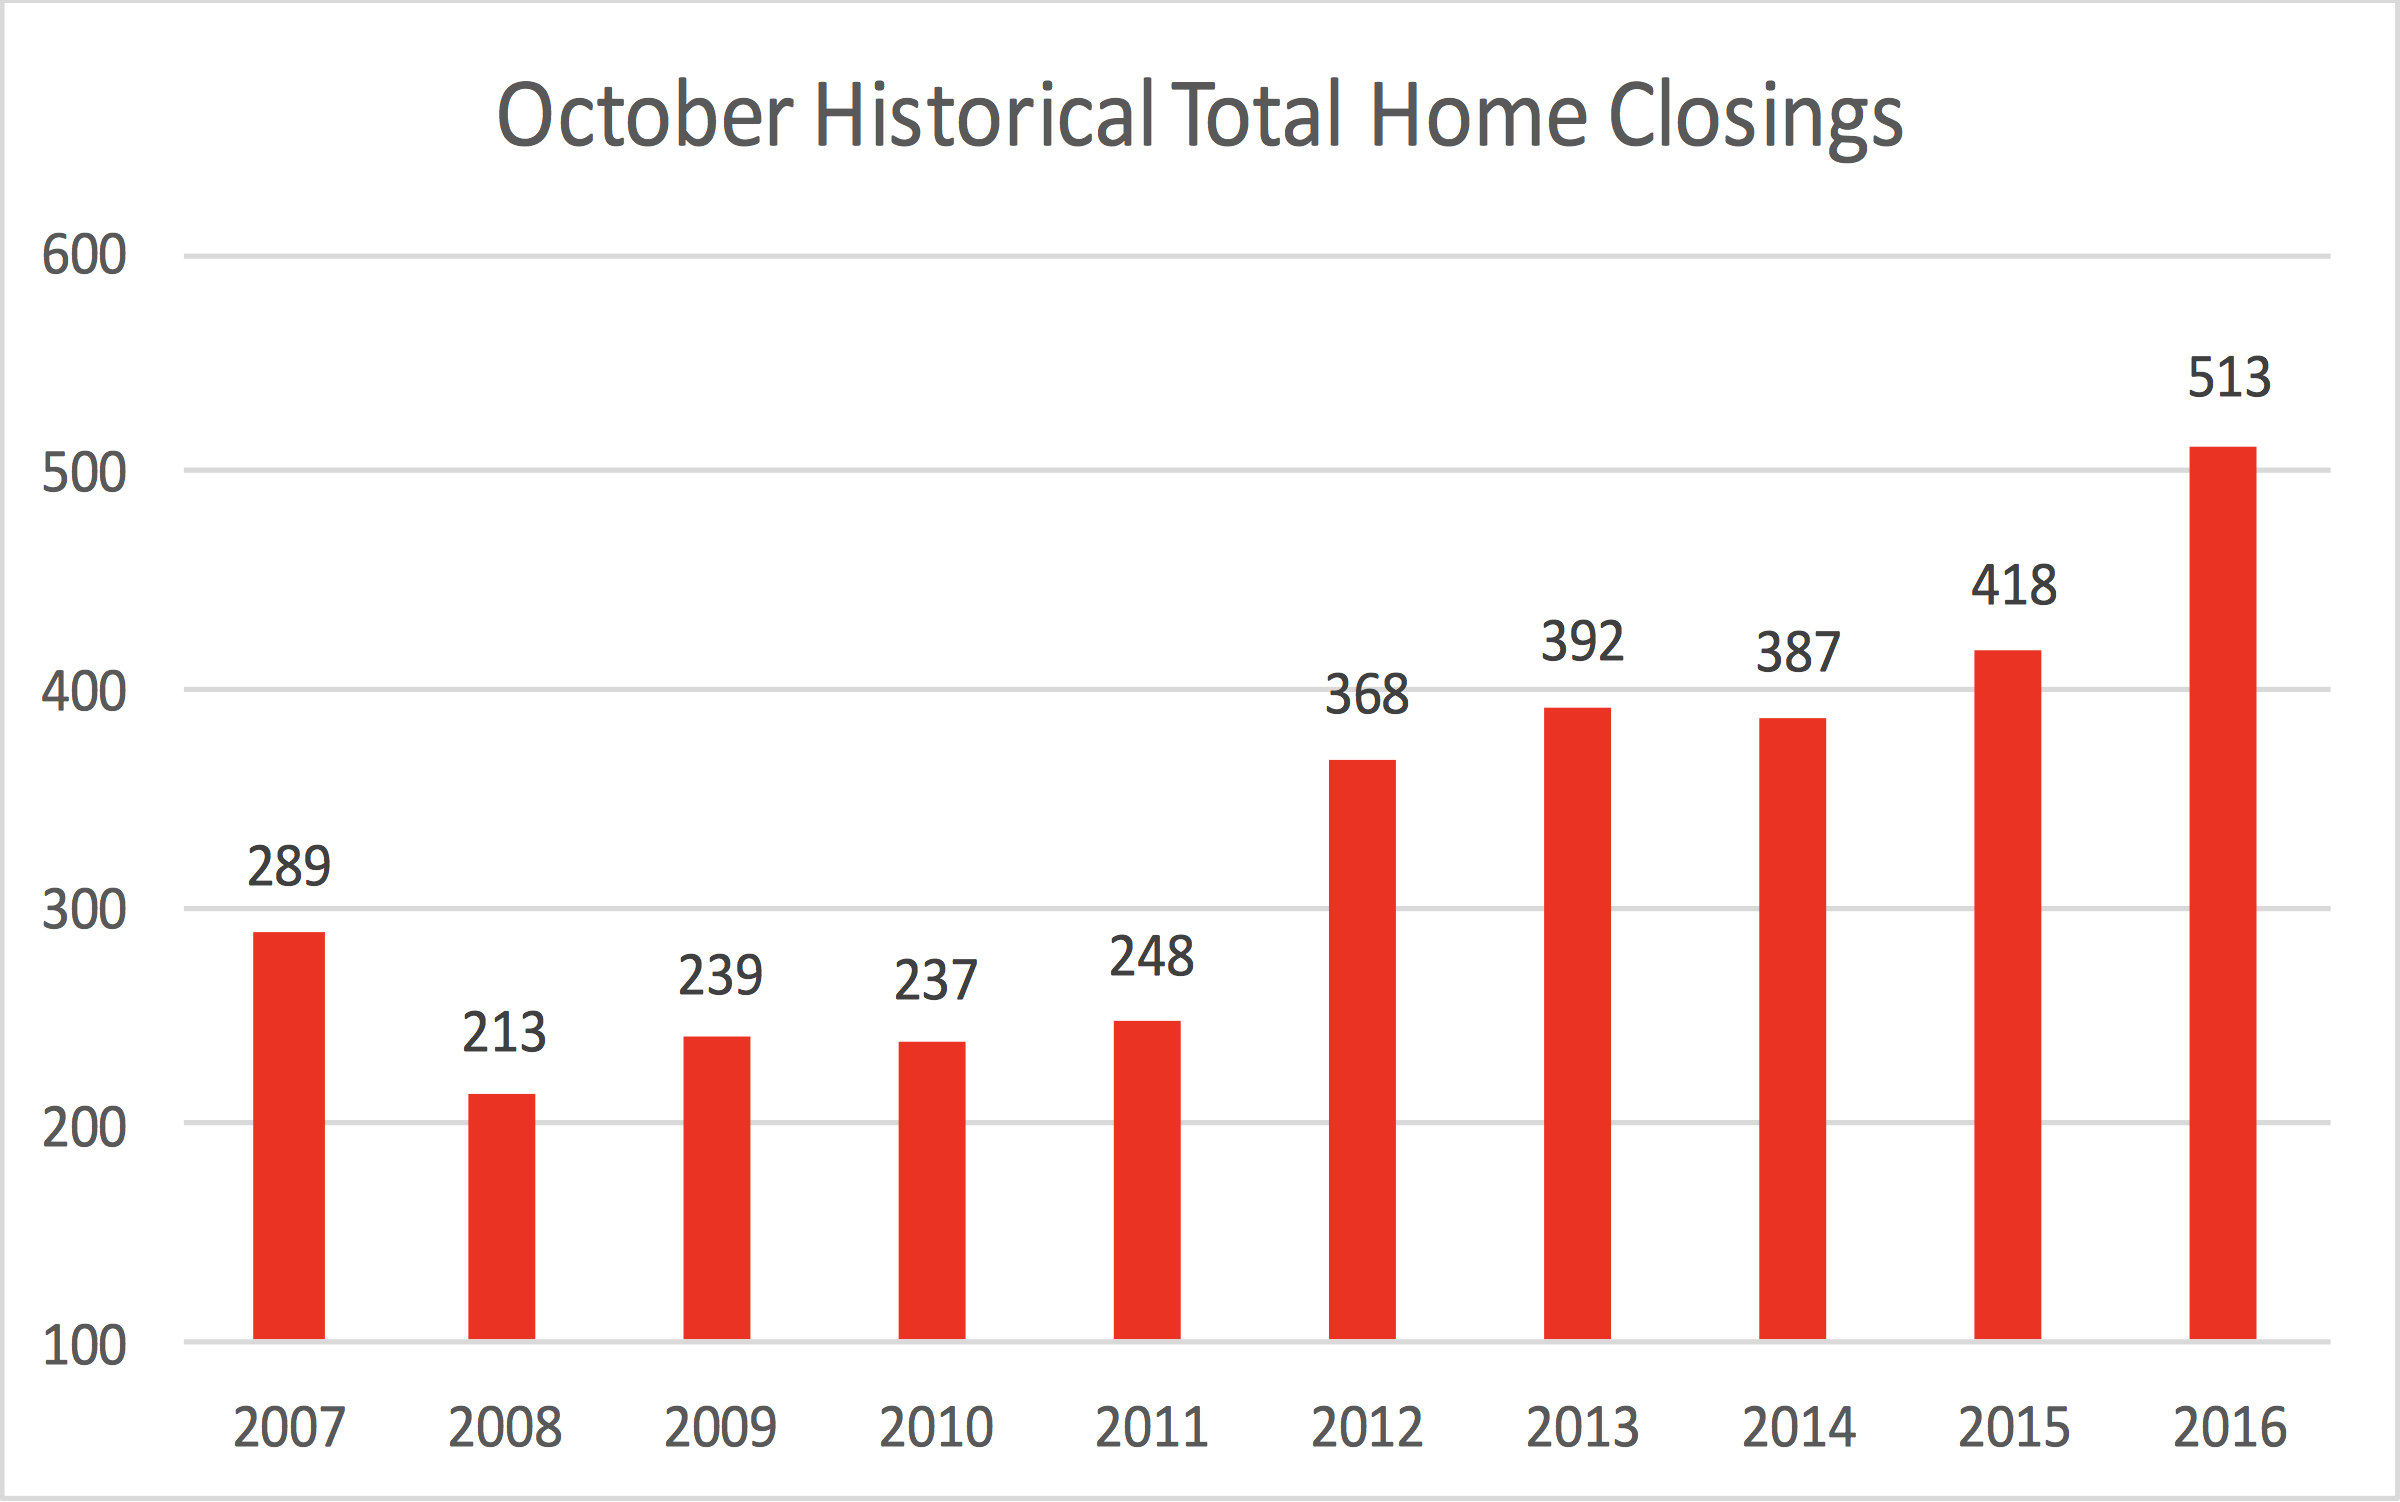 October Historical Total Home Closings in Williamson County